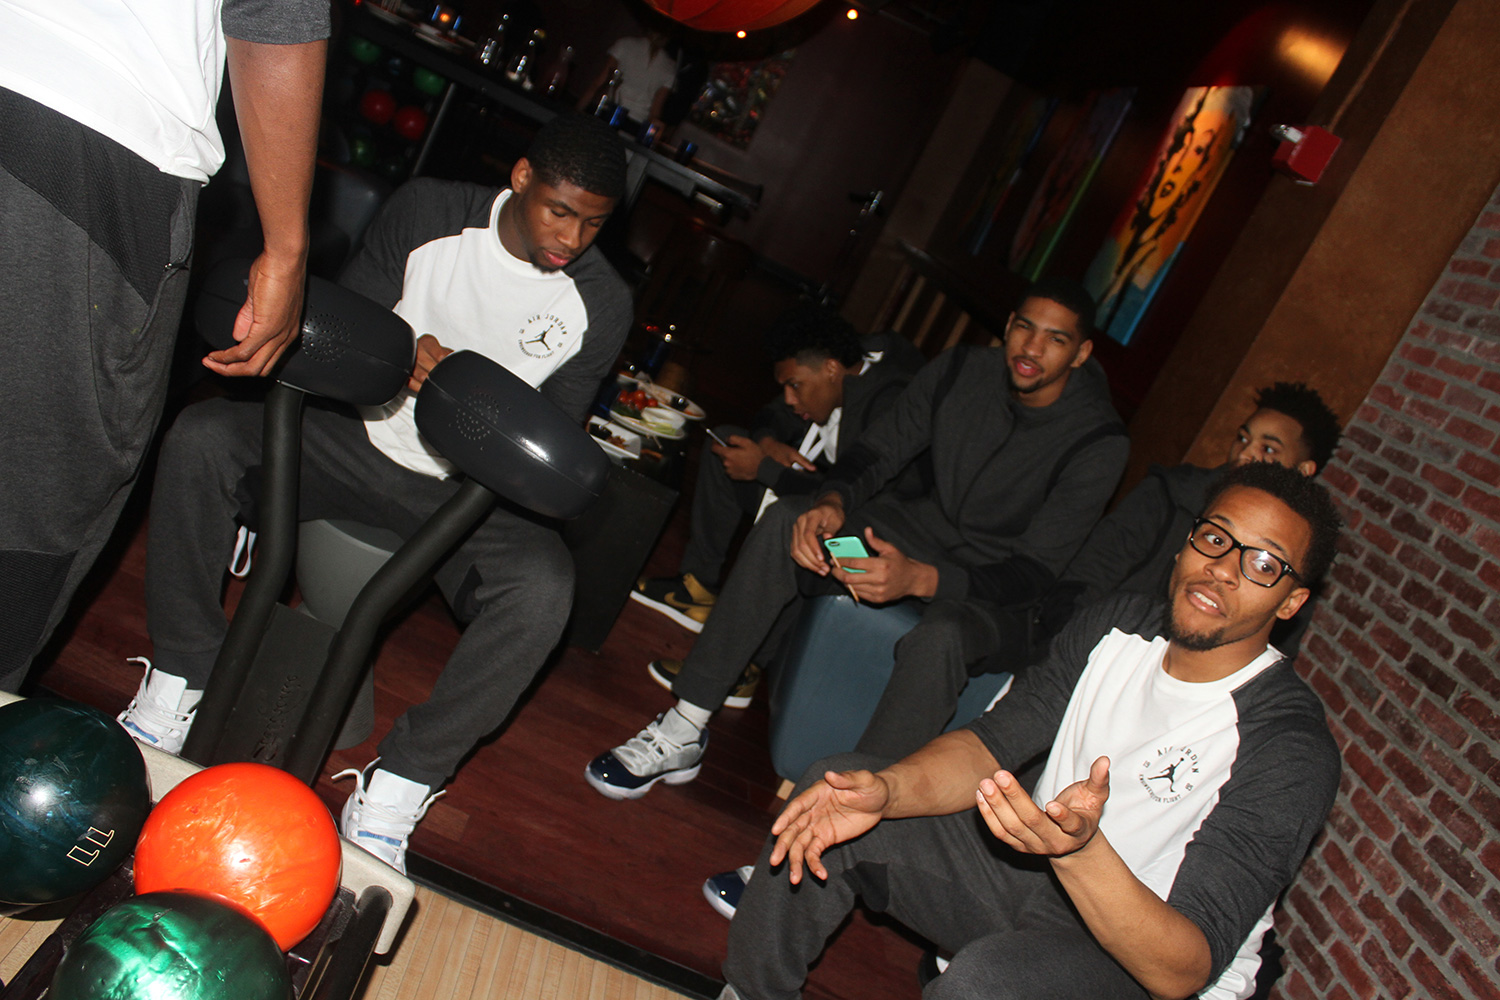 The first event for the week was a trip to the Lucky Strike bowling alley near Times Square. Inside the players were greeted by Jordan Brand athletes Victor Oladipo, Andre Drummond, Greg Monroe and reigning WNBA MVP Maya Moore.